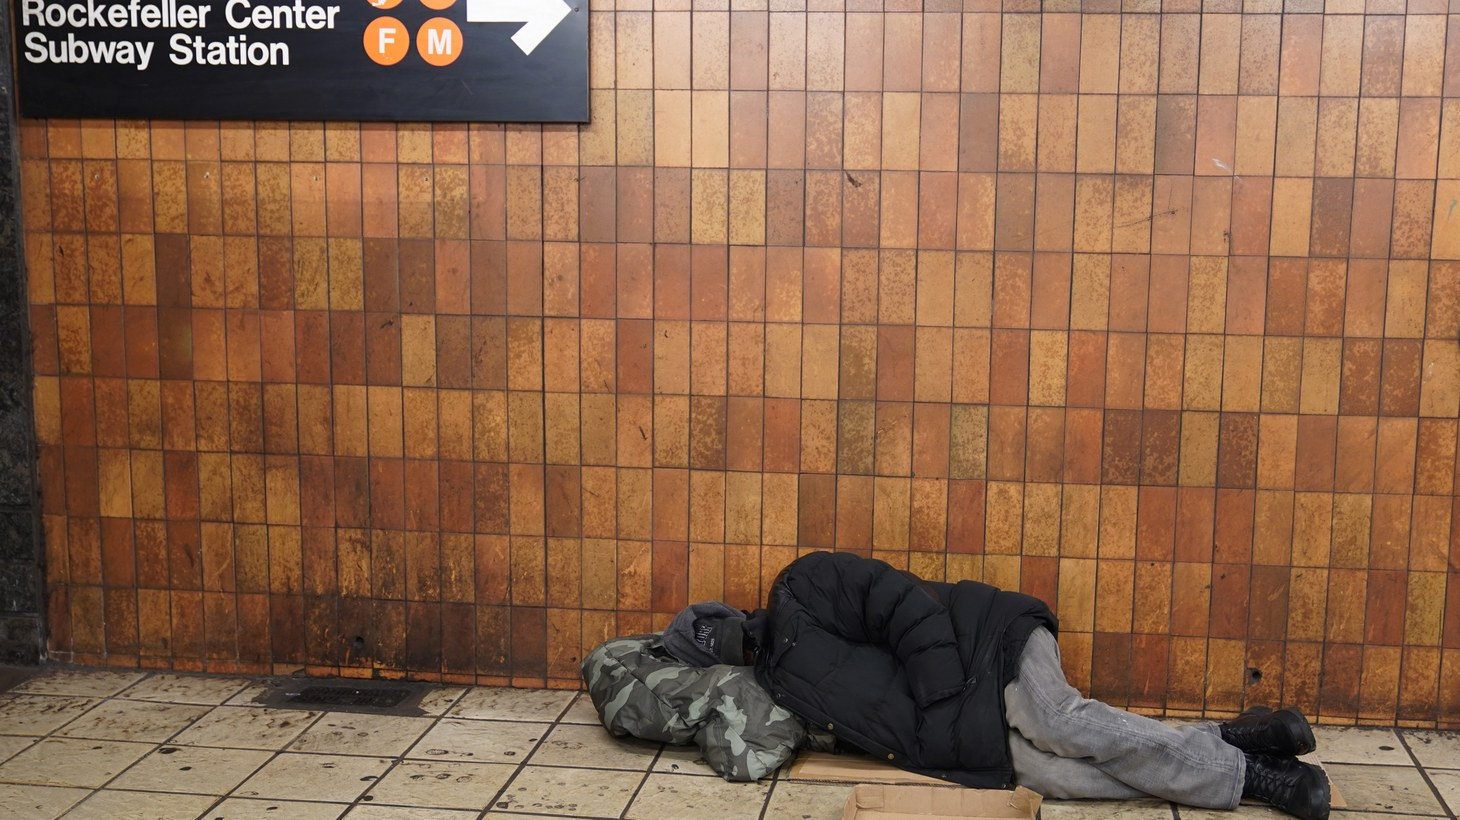 A person sleeps at Times Square subway station in Midtown Manhattan.